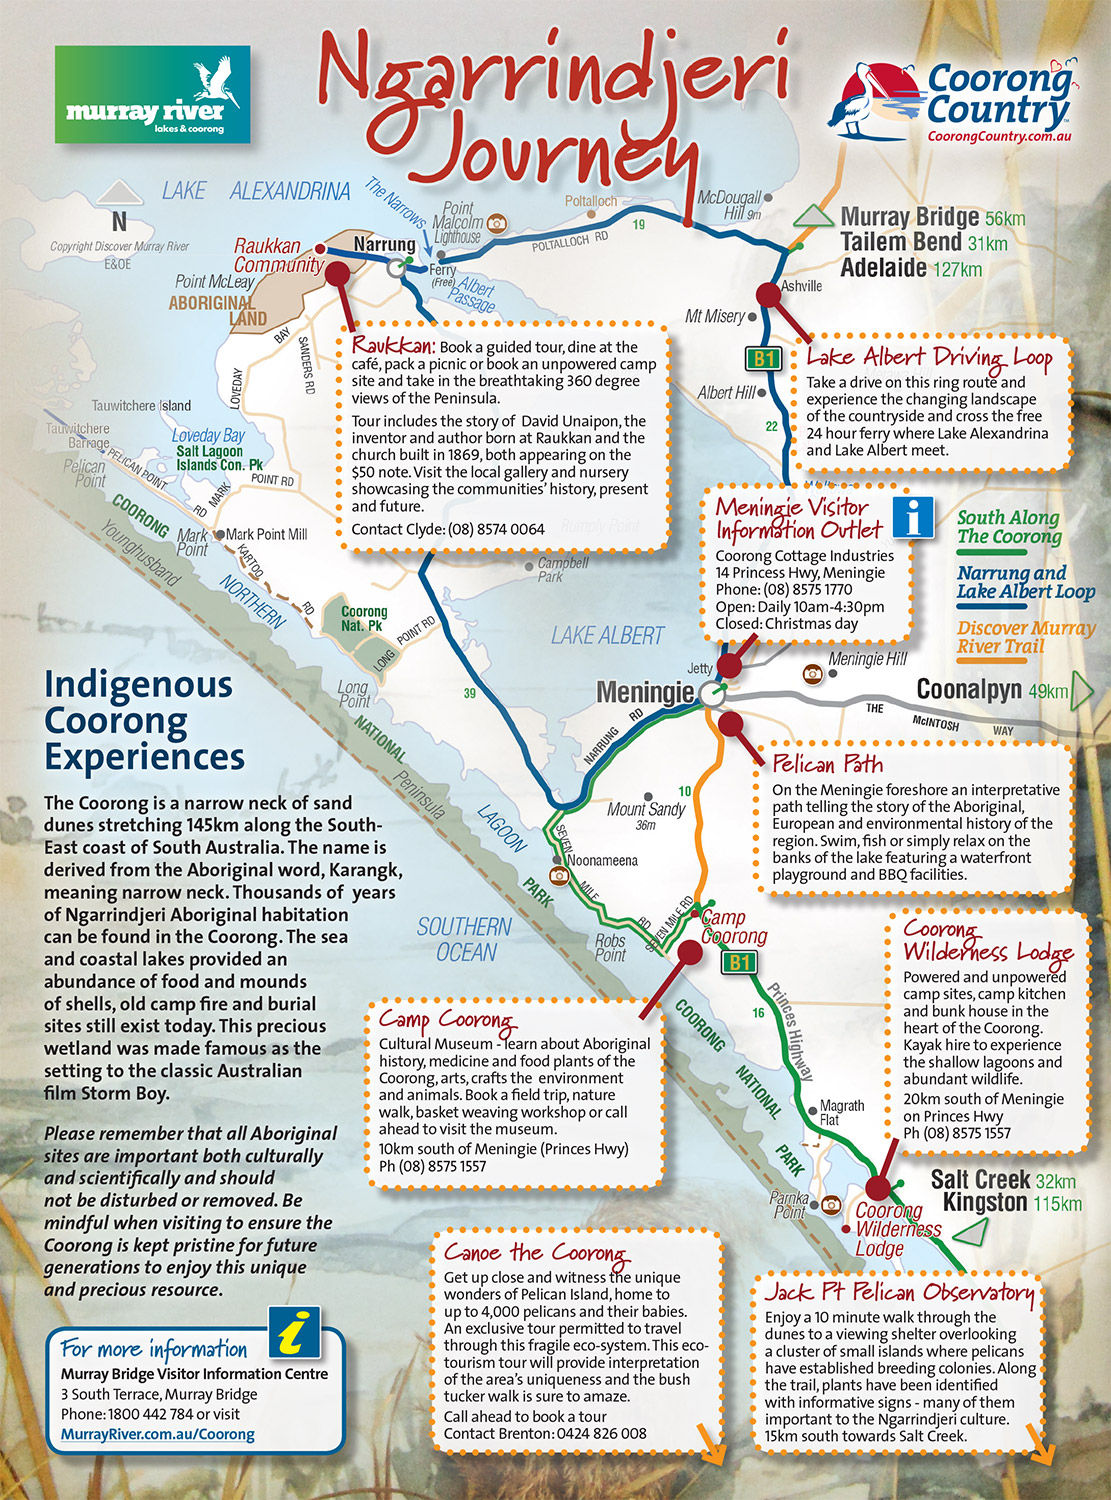 Ngarrindjeri Coorong Journey map - Coorong Country